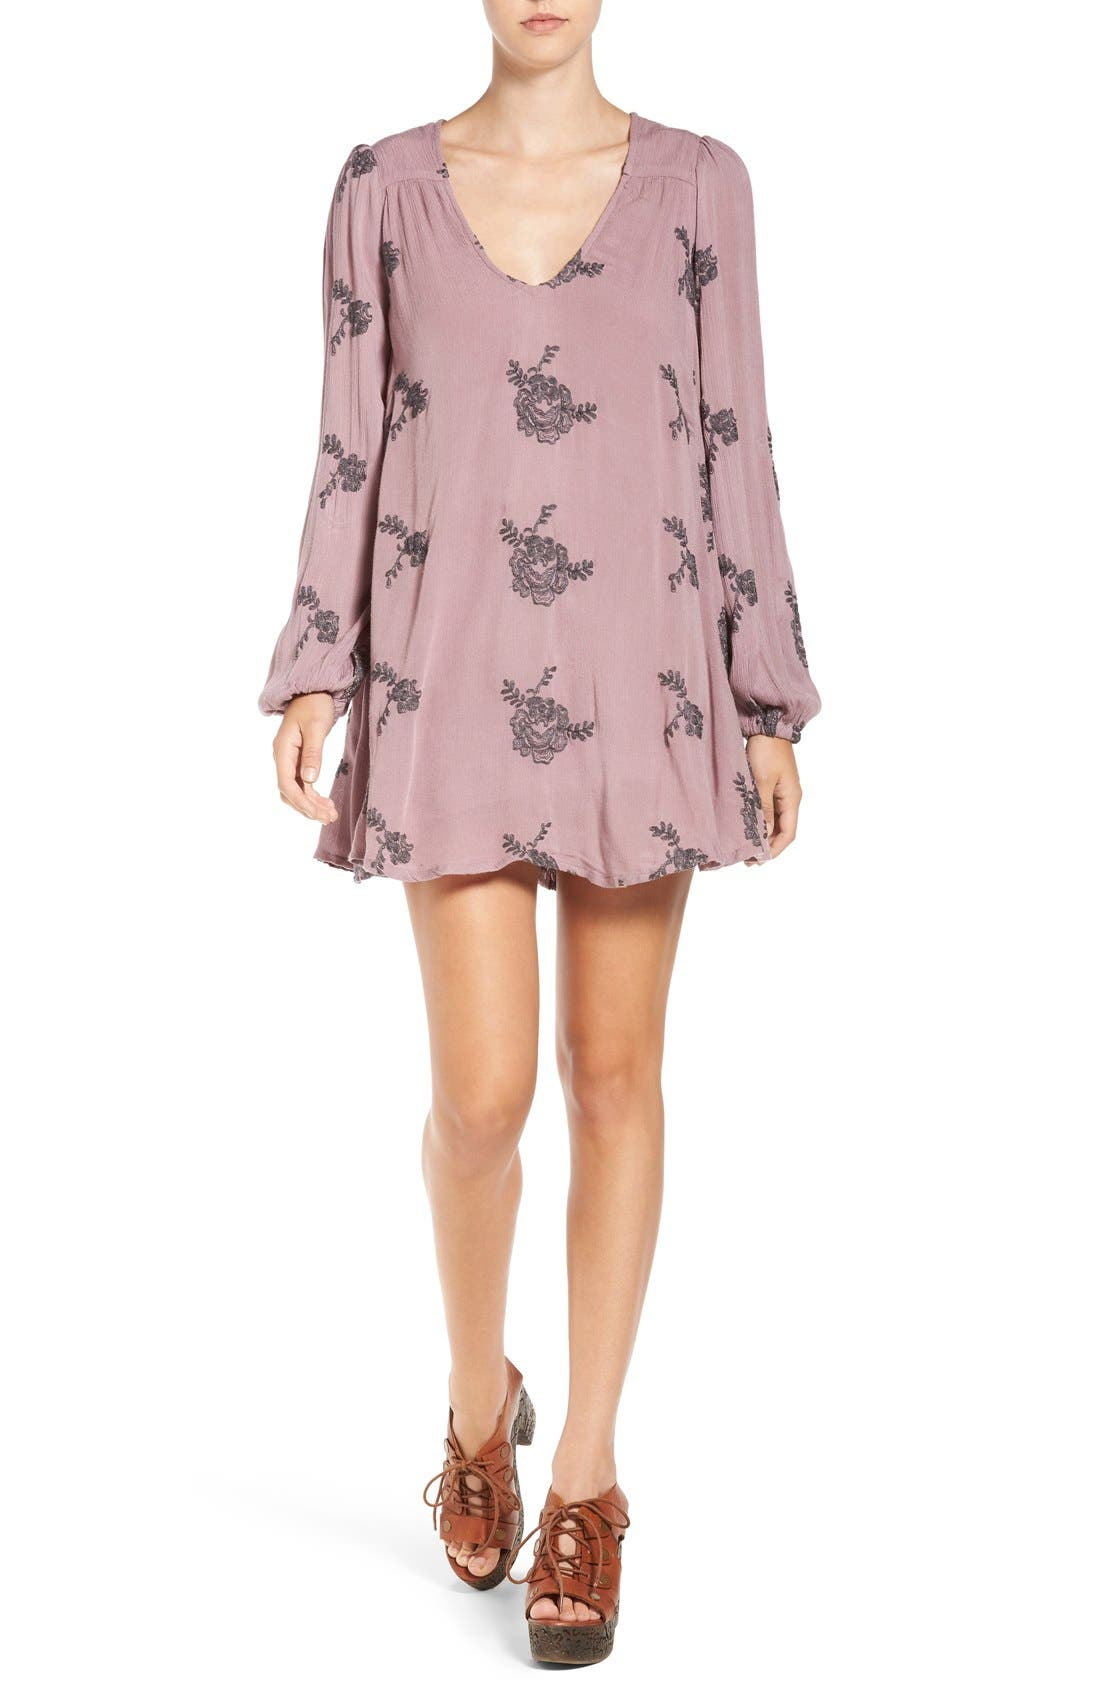 Alternate Image 1 Selected - Free People 'Emma's' Embroidered Swing Dress